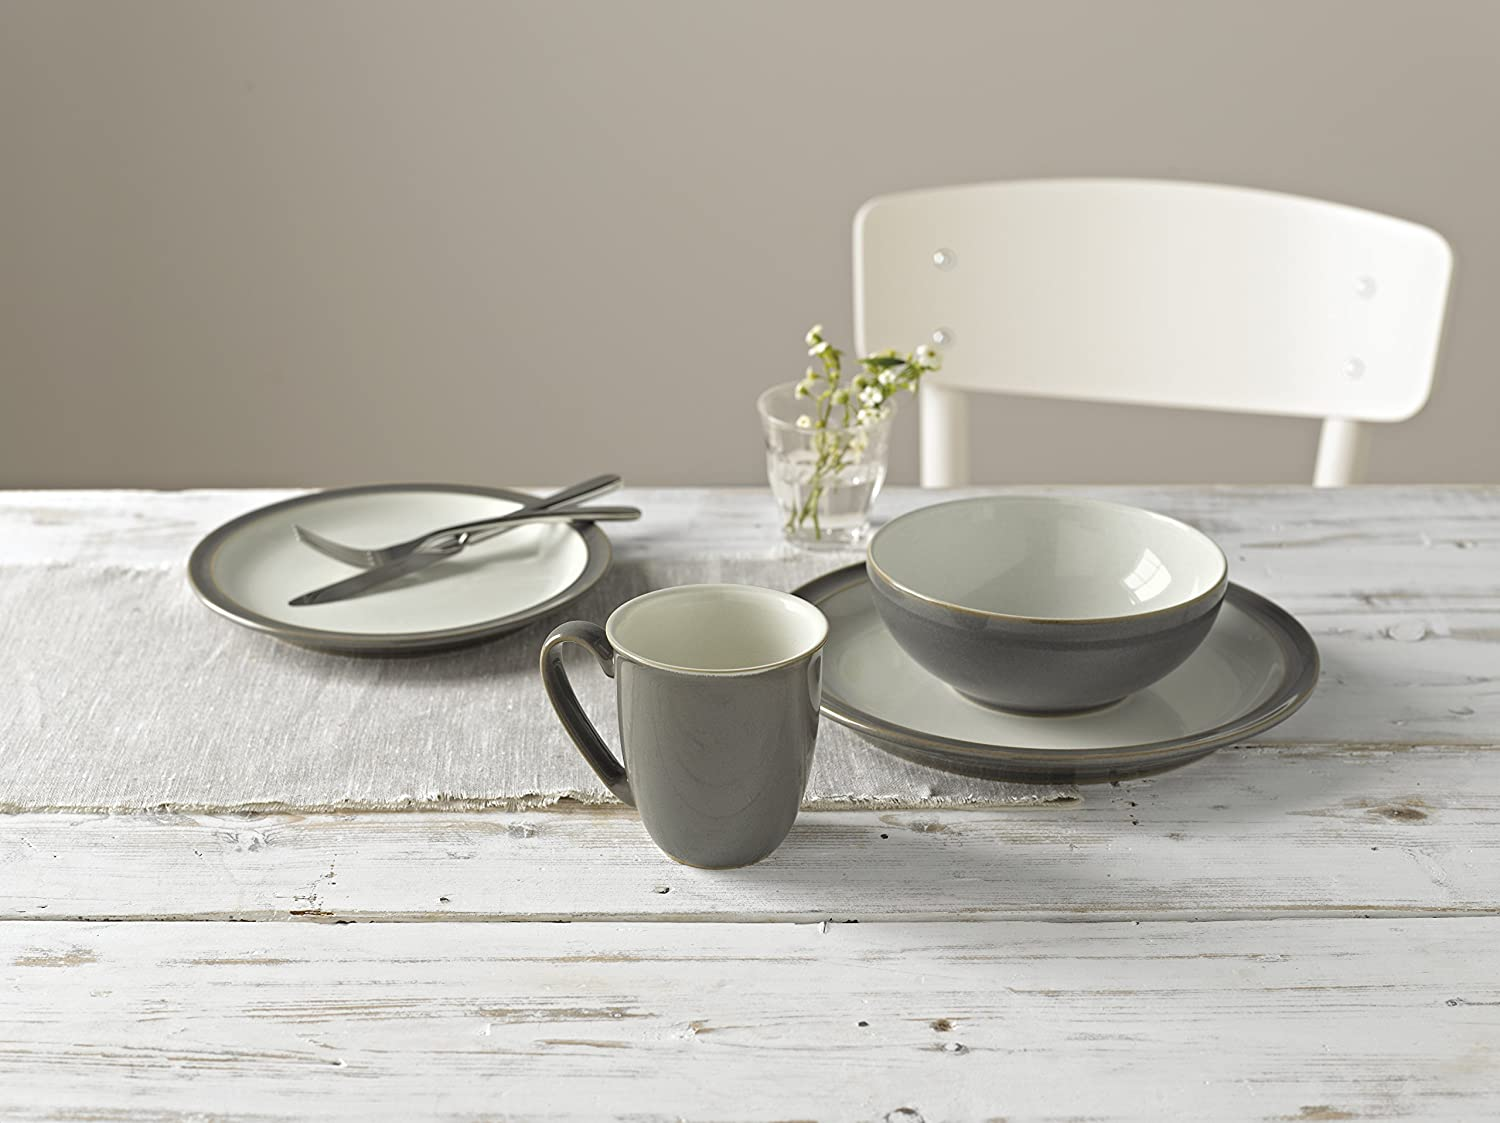 Amazon.com Denby USA Blends Truffle/Canvas 4 Piece Set Brown/Cream Kitchen u0026 Dining & Amazon.com: Denby USA Blends Truffle/Canvas 4 Piece Set Brown/Cream ...